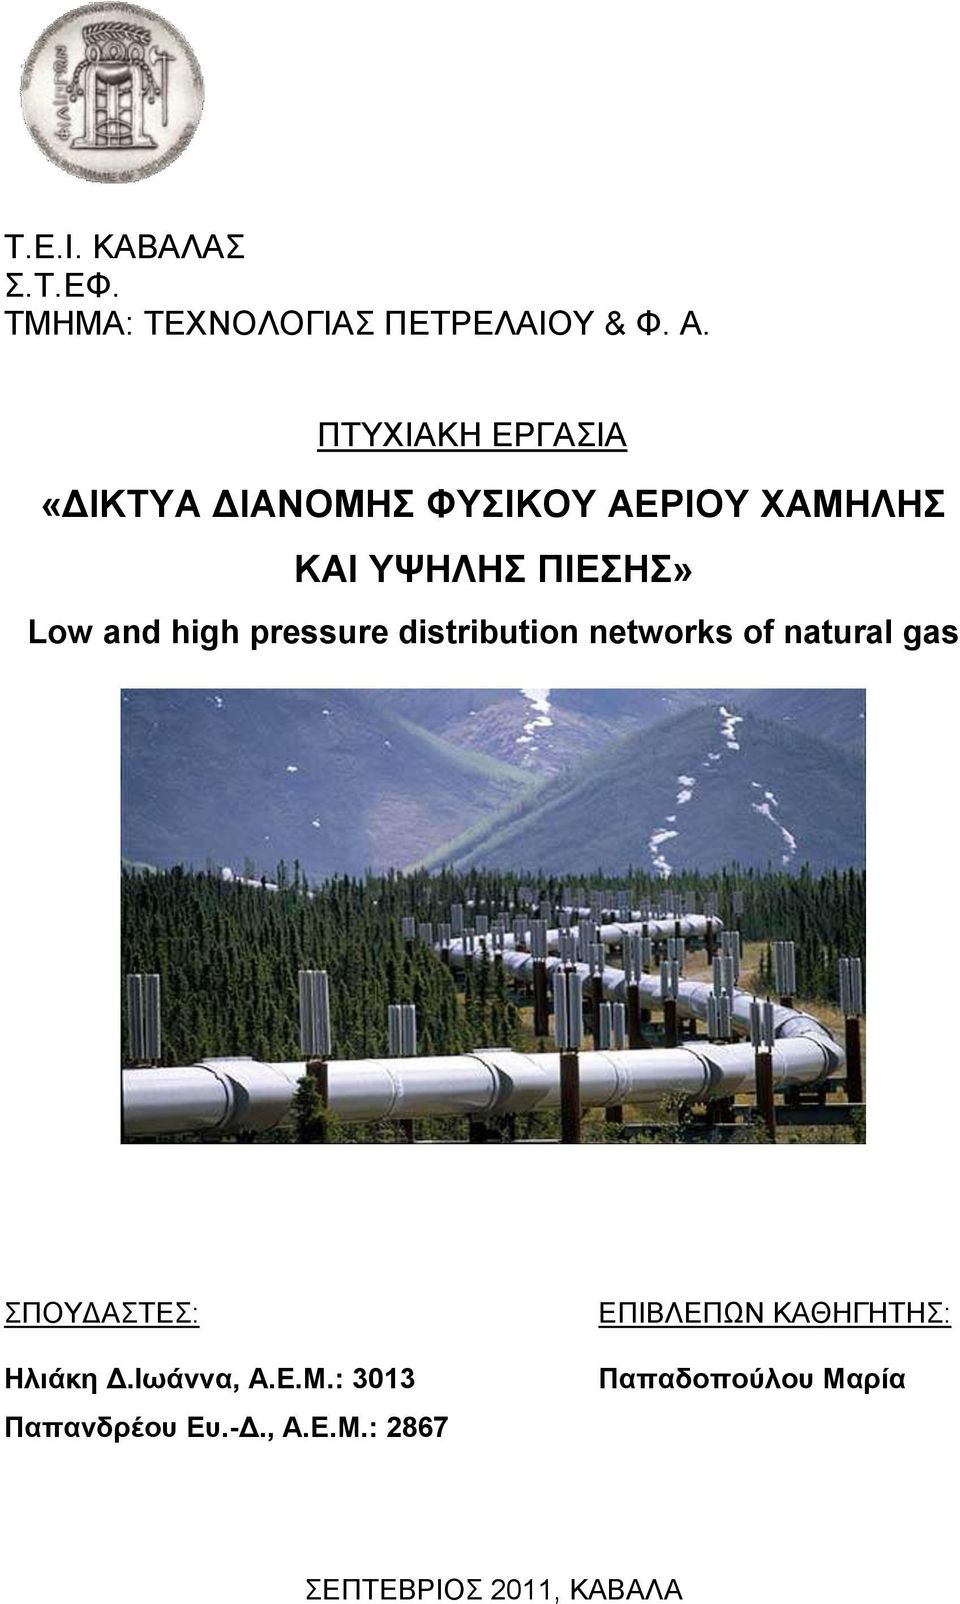 high pressure distribution networks of natural gas ΣΠΟΥΔΑΣΤΕΣ: Ηλιάκη Δ.Ιωάννα, Α.Ε.Μ.